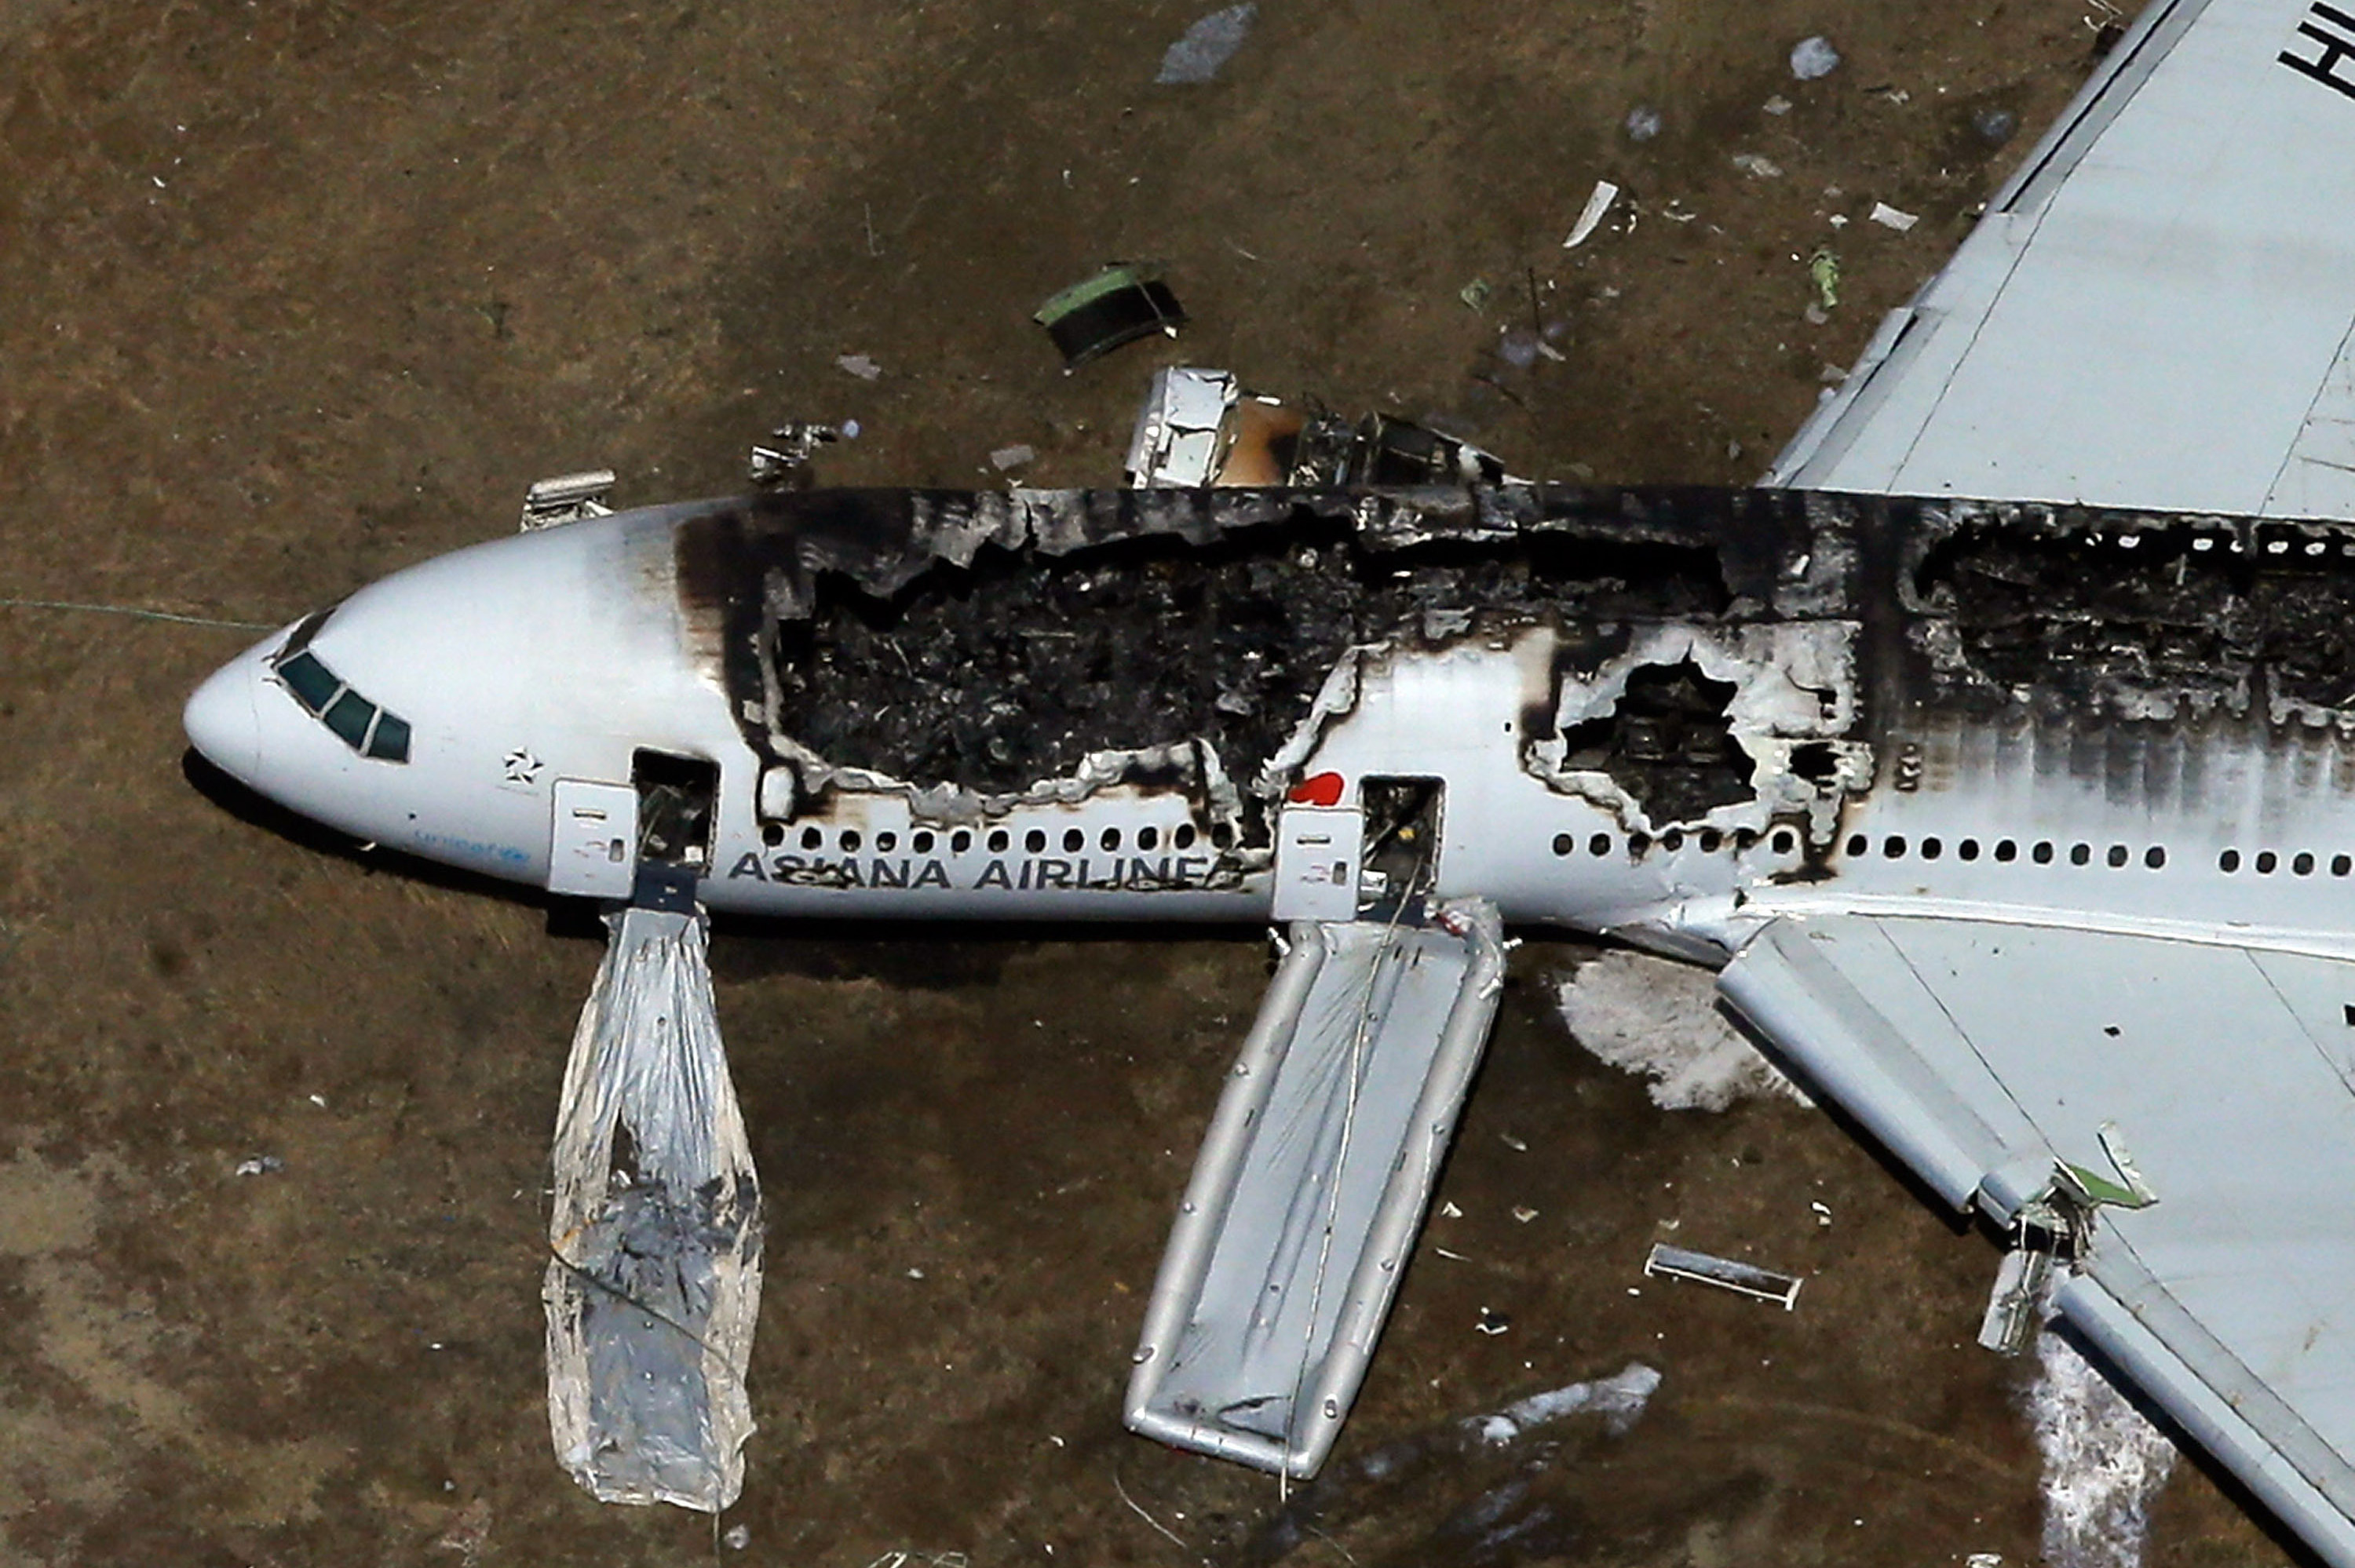 Asiana Airlines Flight 214 from Seoul, South Korea, crashed at San Francisco International Airport on Saturday. Two of the 307 people on board were confirmed dead.